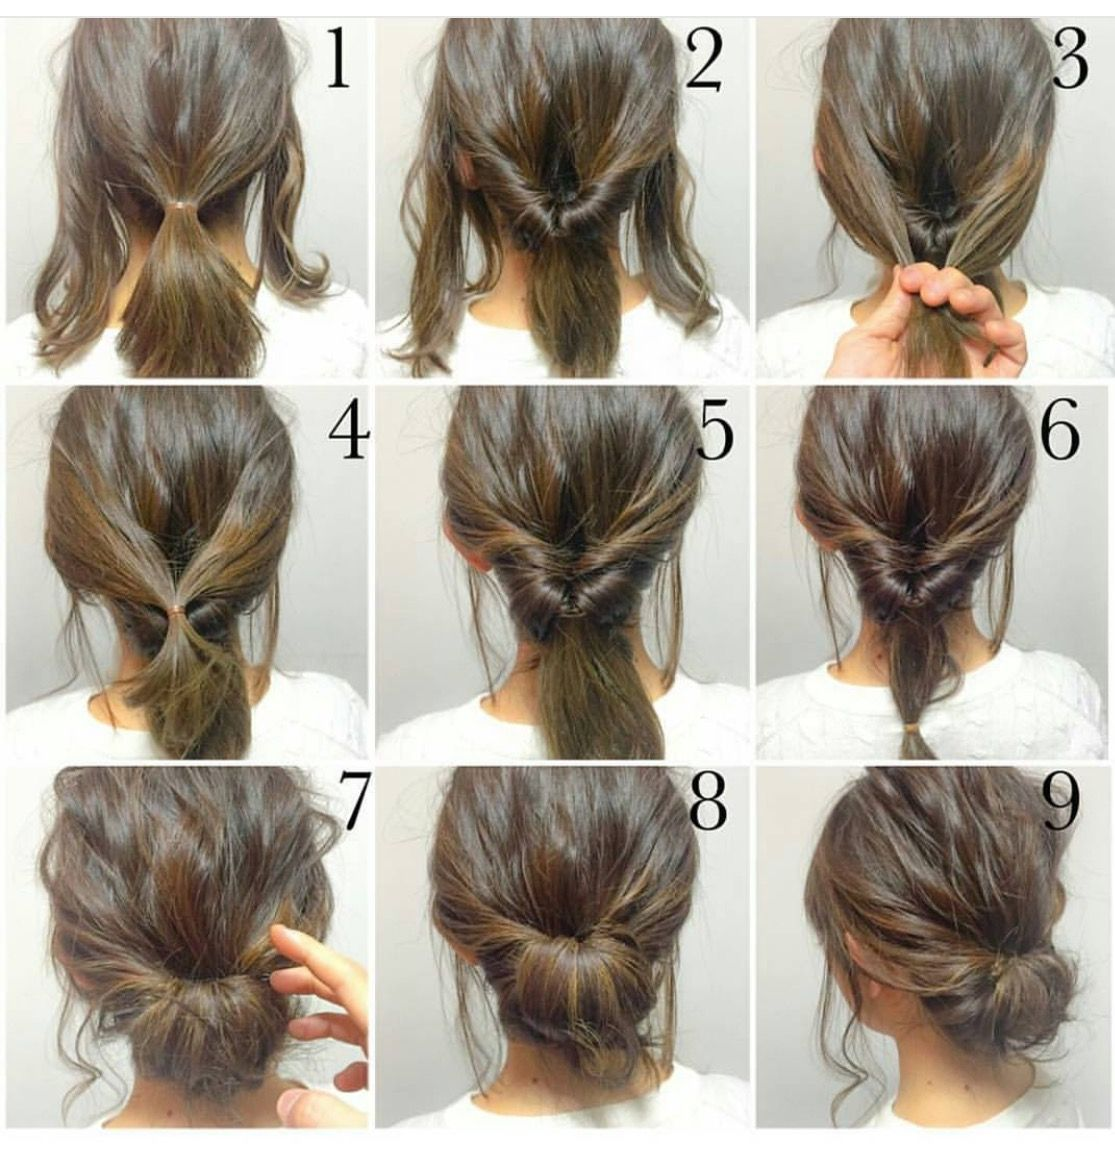 Updo Hairstyles For Short Hair Easy Hope This Works Out Quick Morning Hair  Frisuren  Pinterest